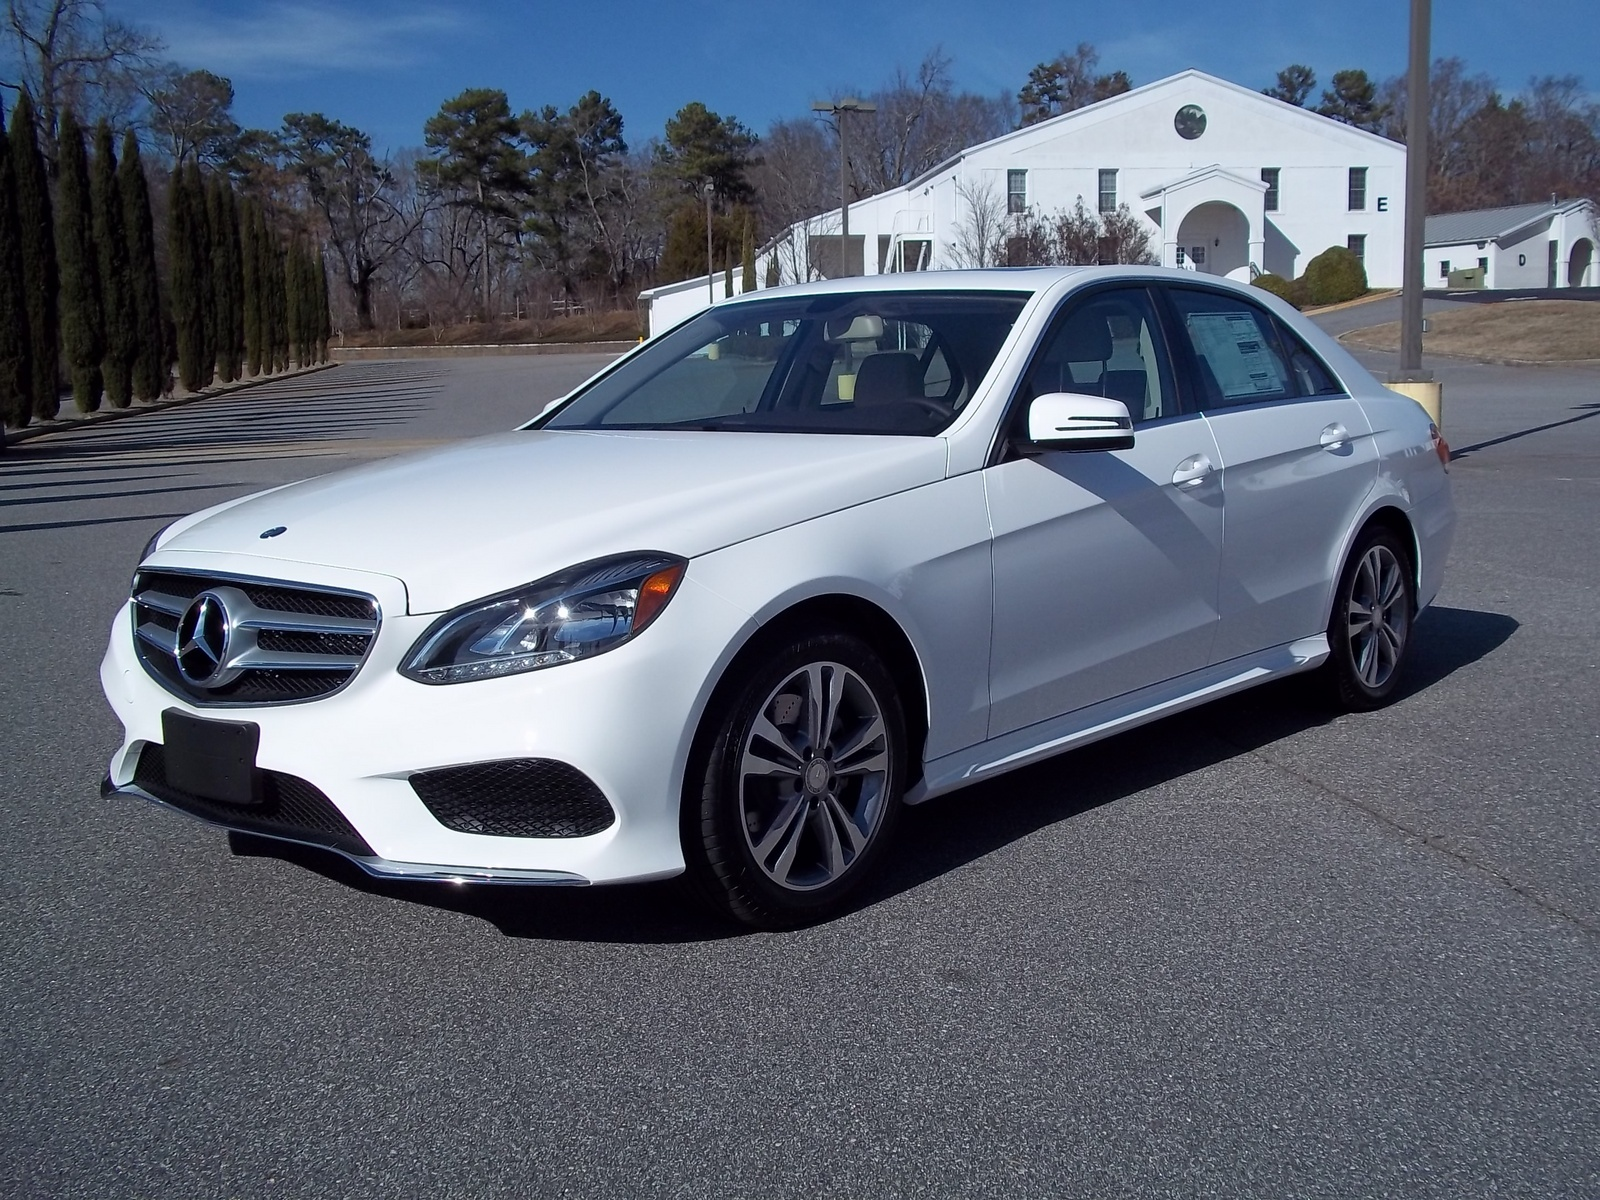 New 2015 2016 mercedes benz e class for sale cargurus for Mercedes benz e class models